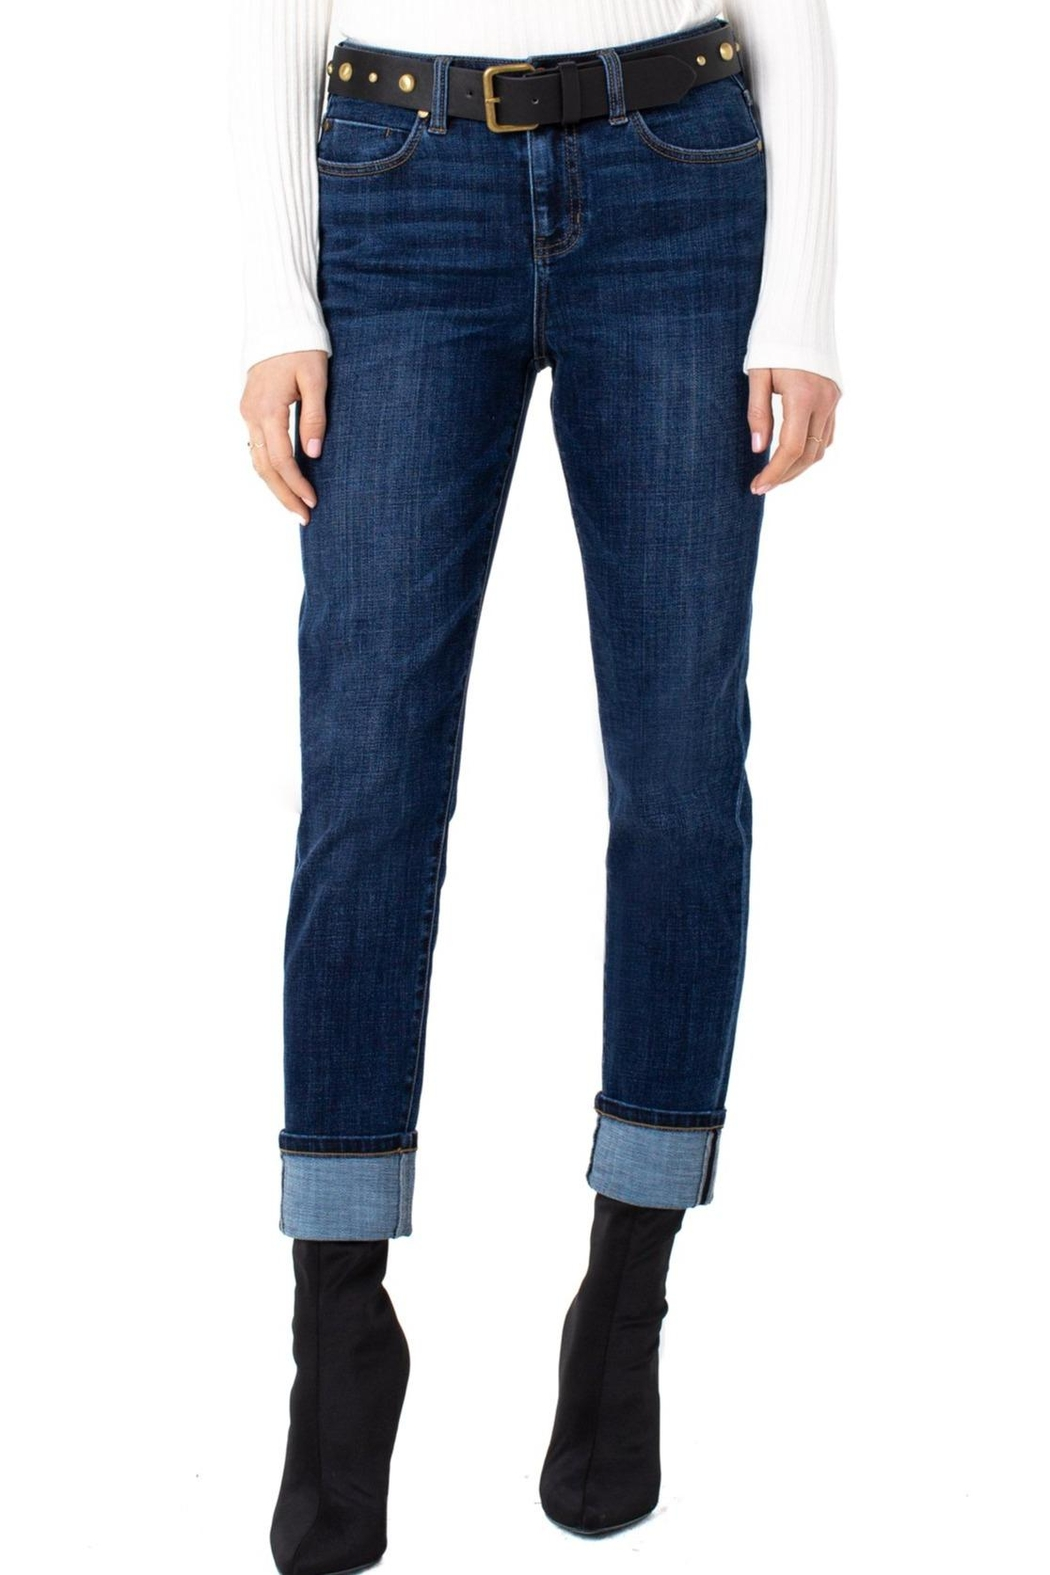 Liverpool Jeans Company Marley Girlfriend Cuffed With Belt Jeans - Back Cropped Image